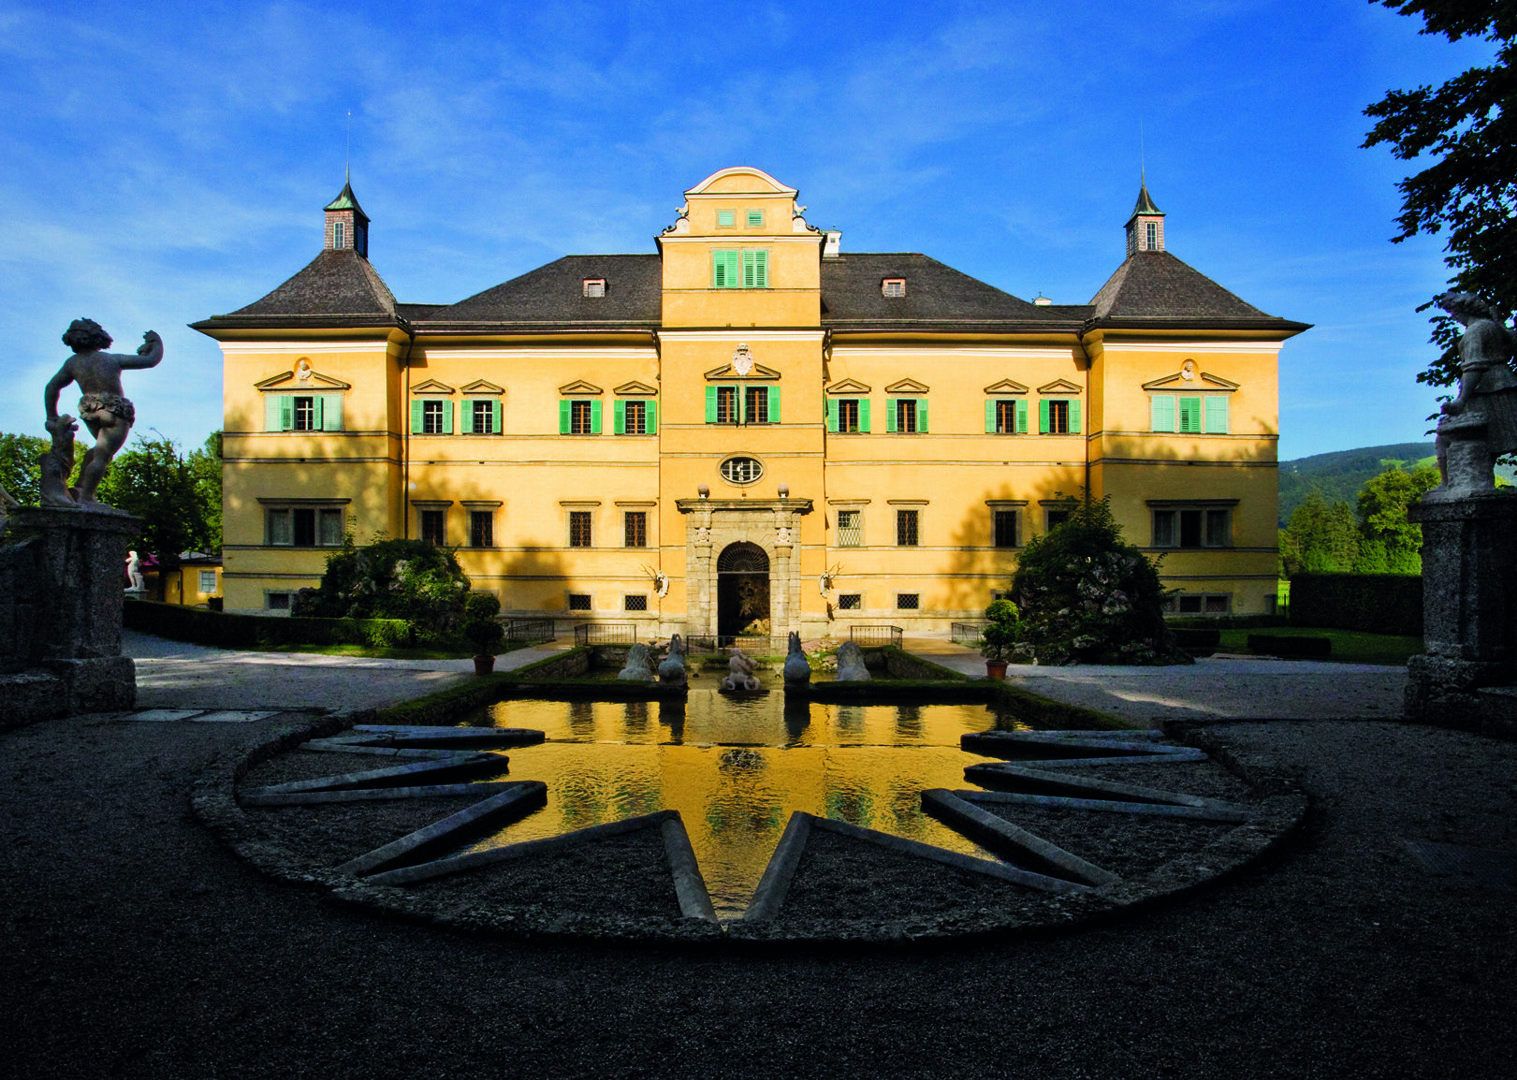 hellbrunn-palace-austrian-culture-family-cycling-tour.jpg - Austria - Ten Lakes Tour - Self-Guided Family Cycling Holiday - Family Cycling